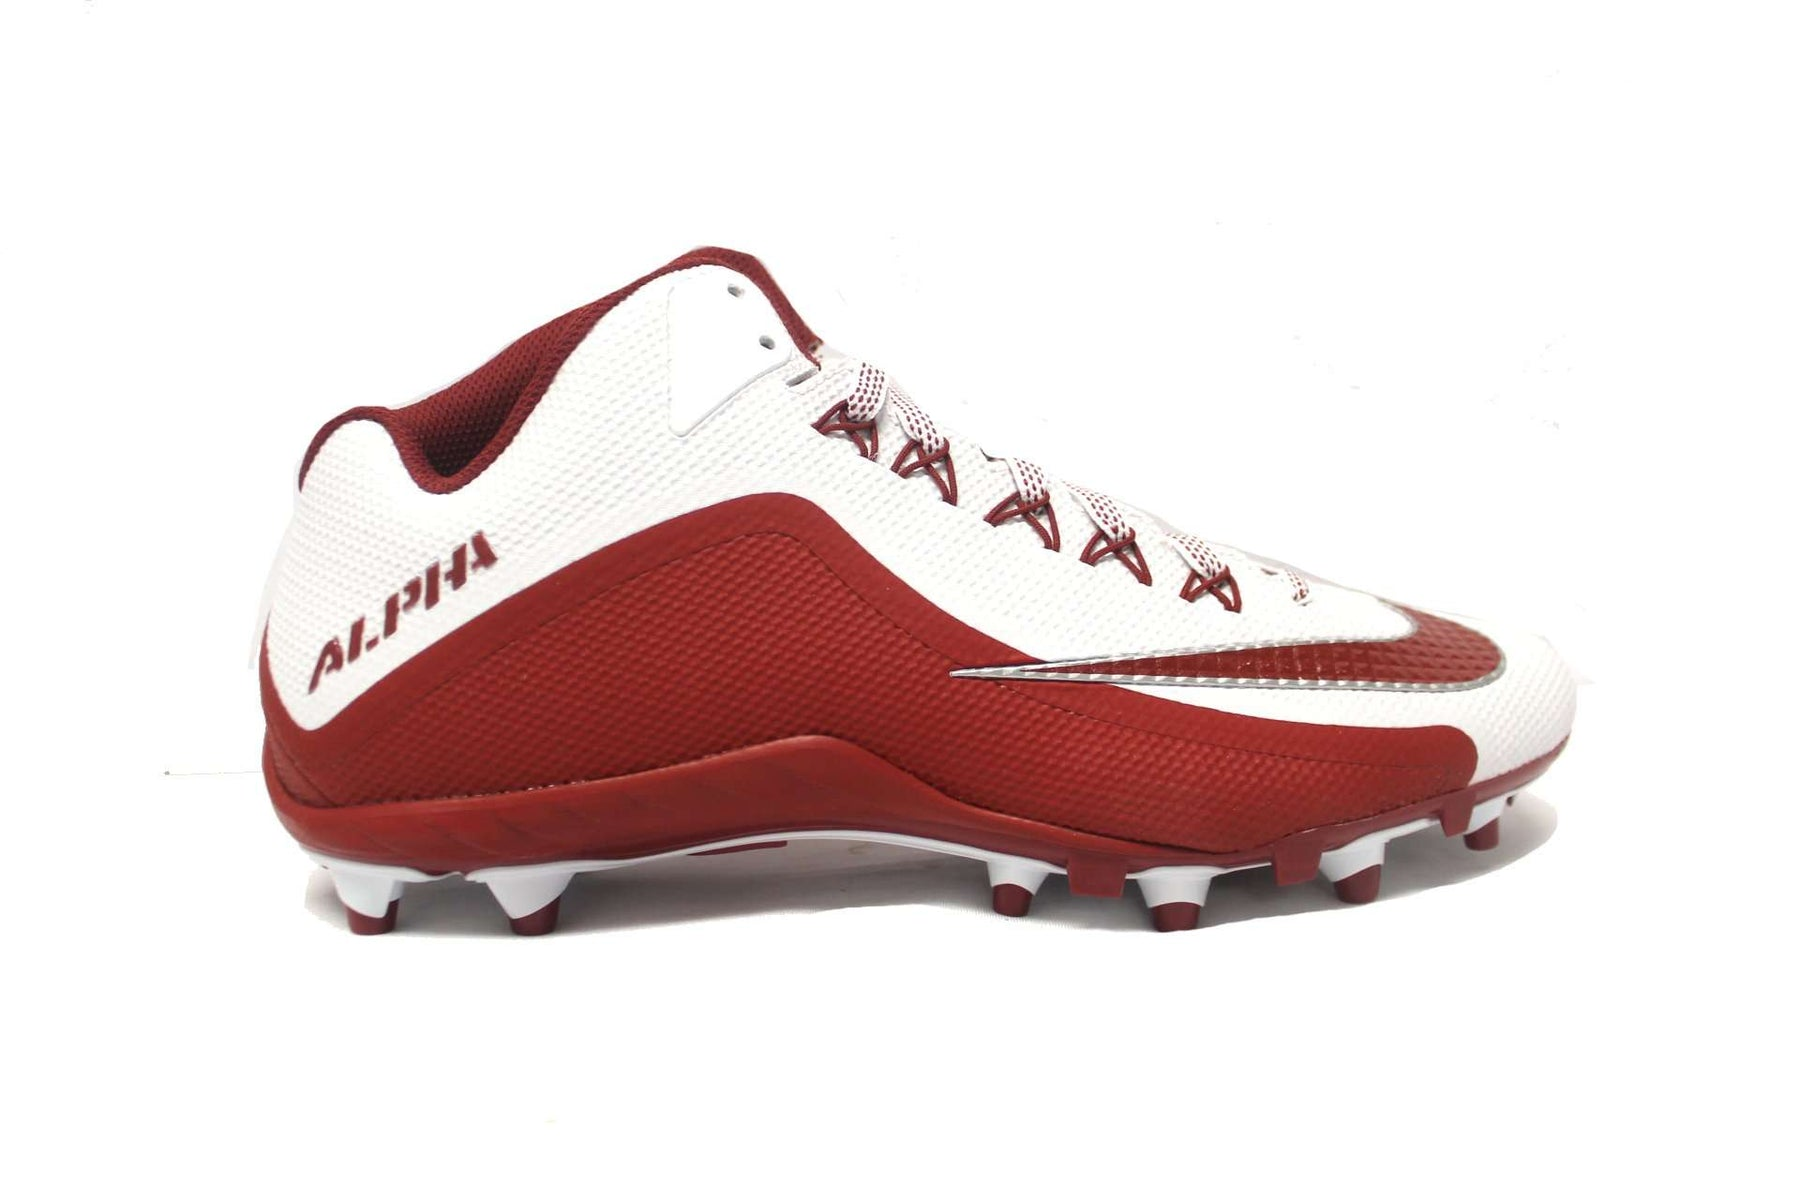 buy popular 8a5f2 76ab1 ... Nike Alpha Pro 2 3 4 TD Football Cleats - League Outfitters ...